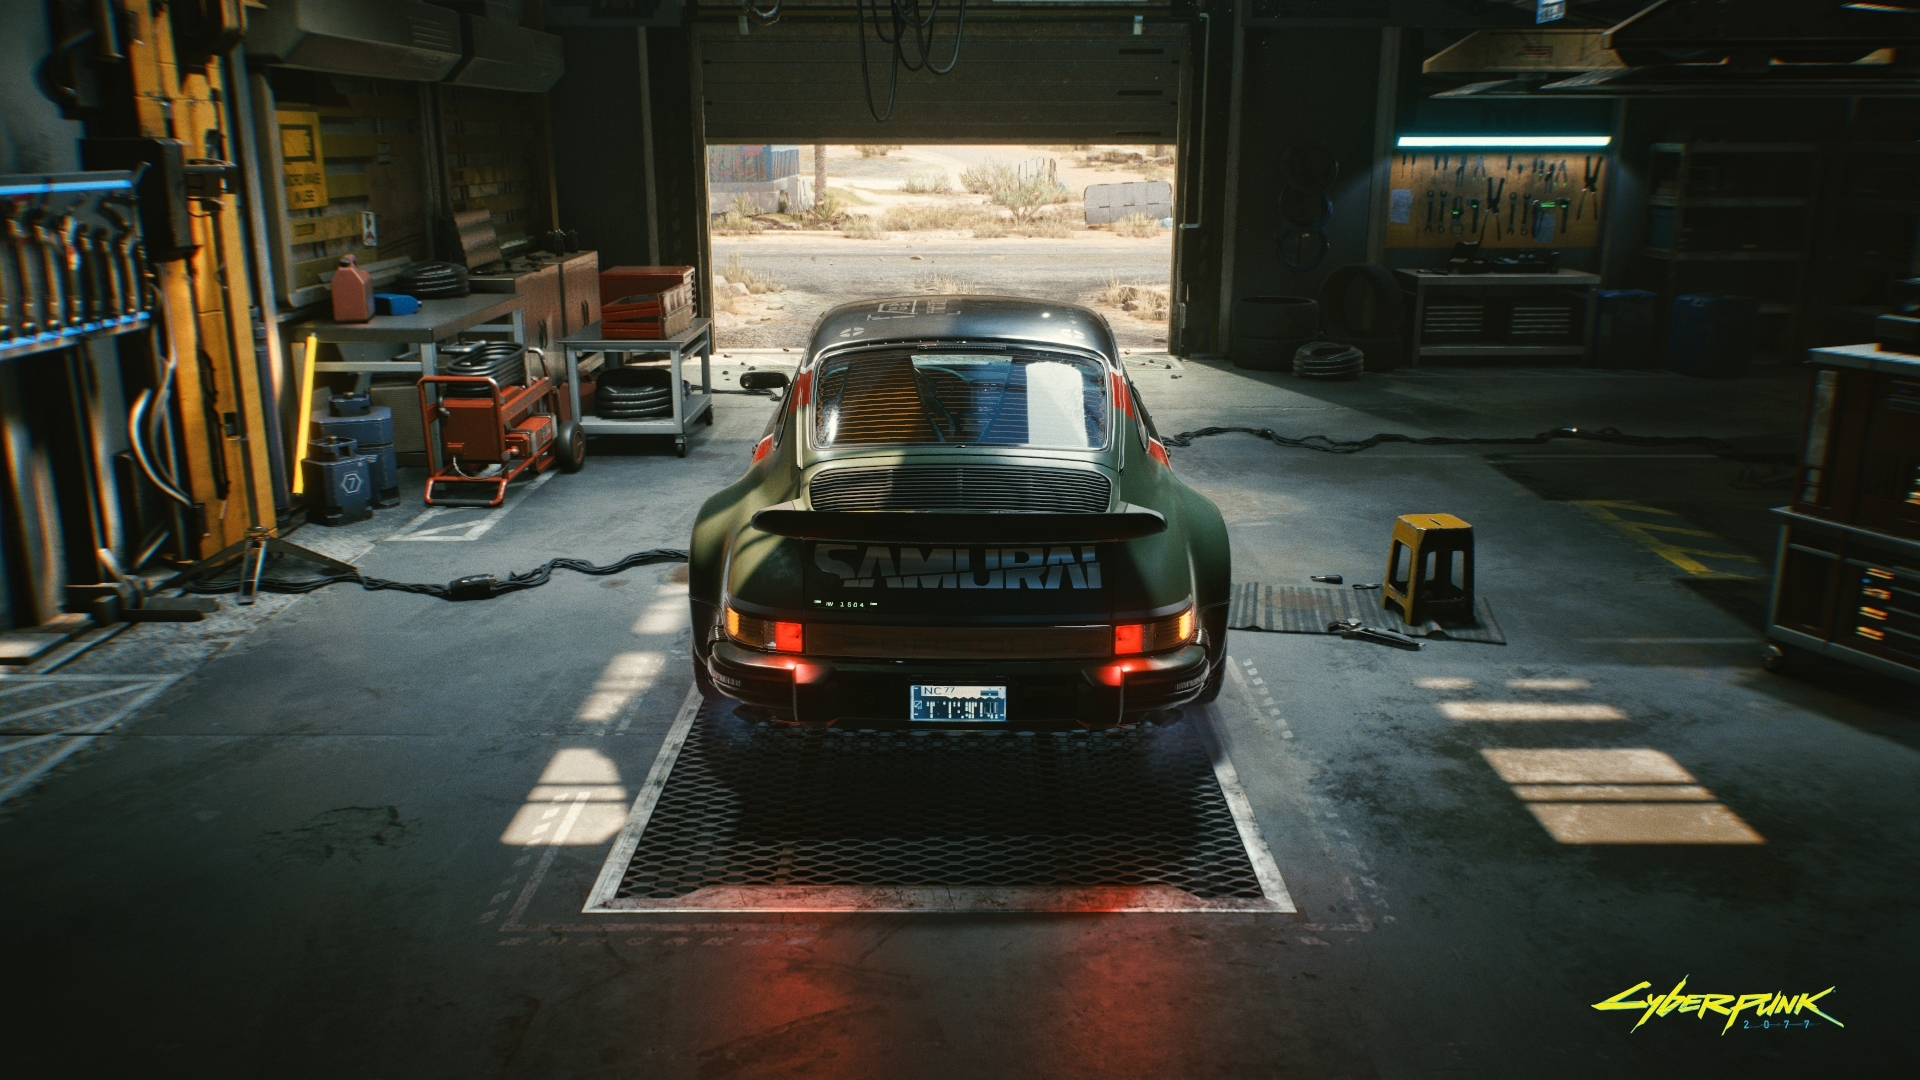 Cyberpunk 2077 Porsche 911 Turbo Wallpaper Hd Games 4k Wallpapers Images Photos And Background